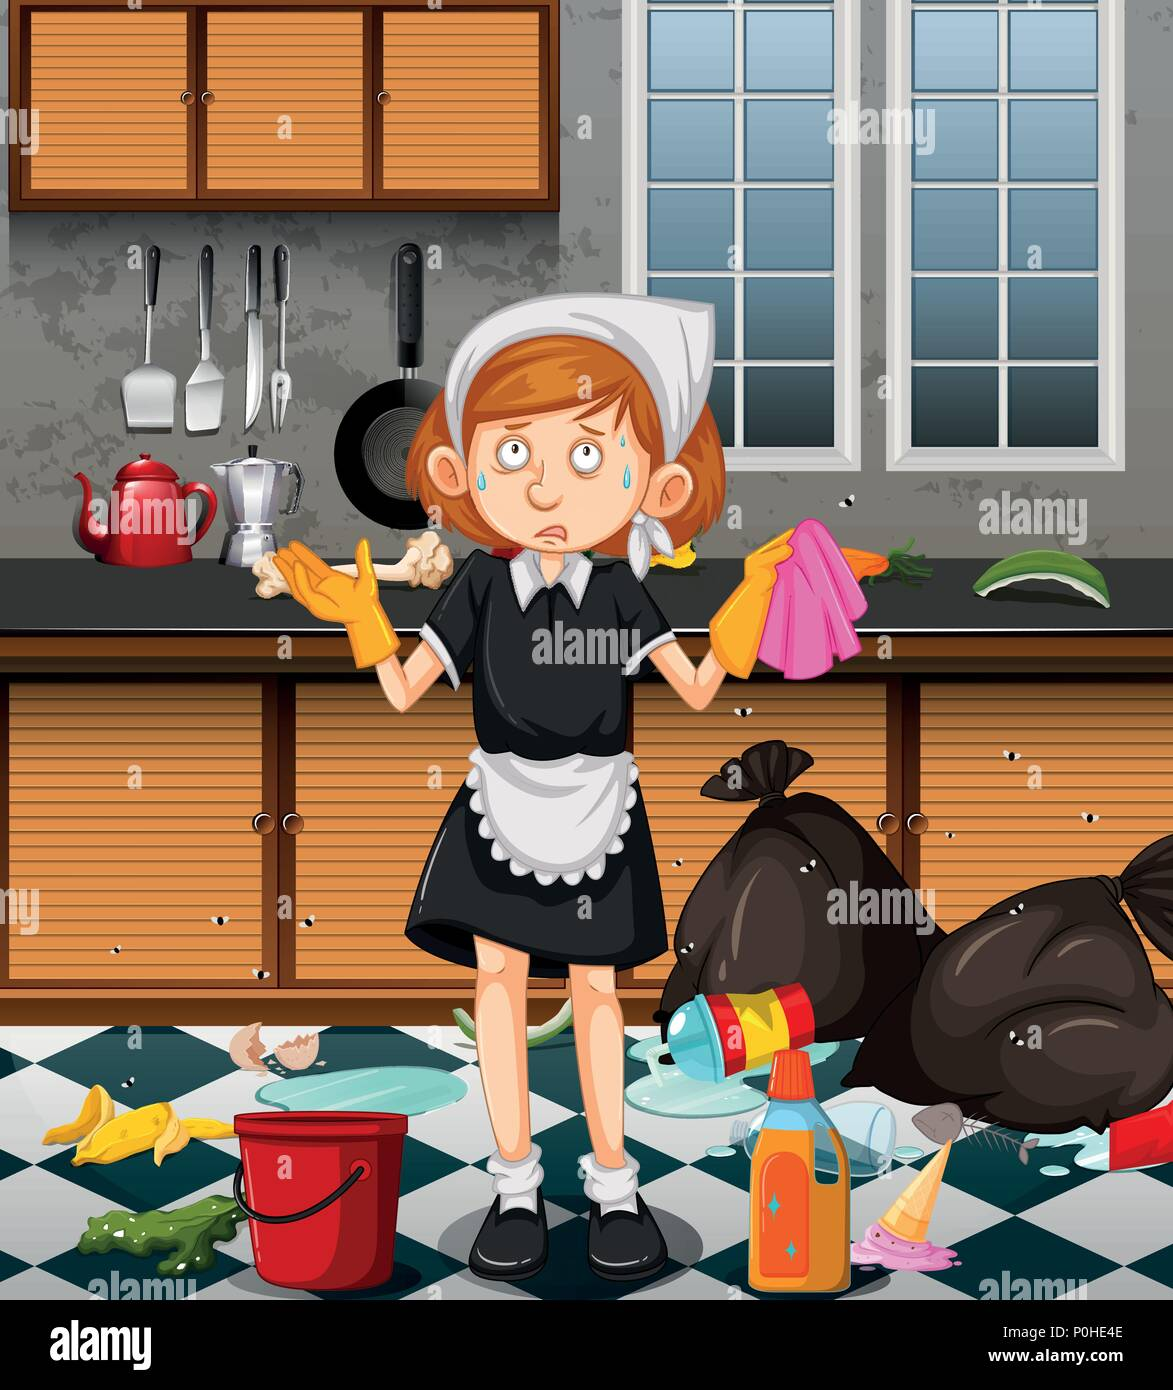 Kitchen Clean Up Cartoon: A Maid Cleaning Dirty Kitchen Illustration Stock Vector